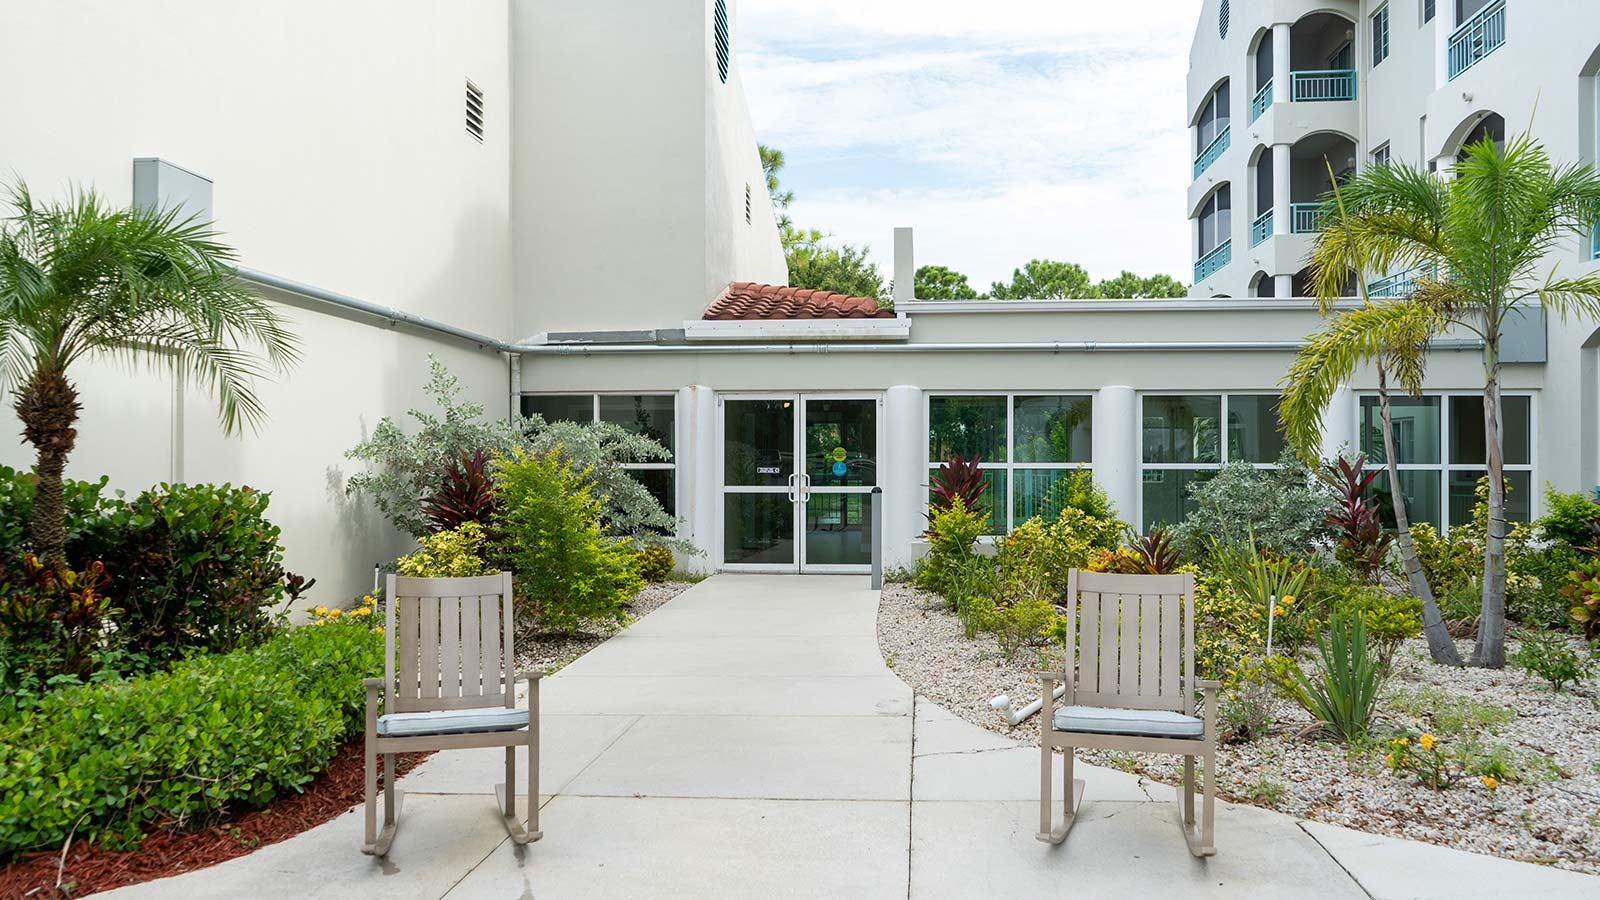 Courtyard at Heron Club assisted living and memory care in Sarasota Florida